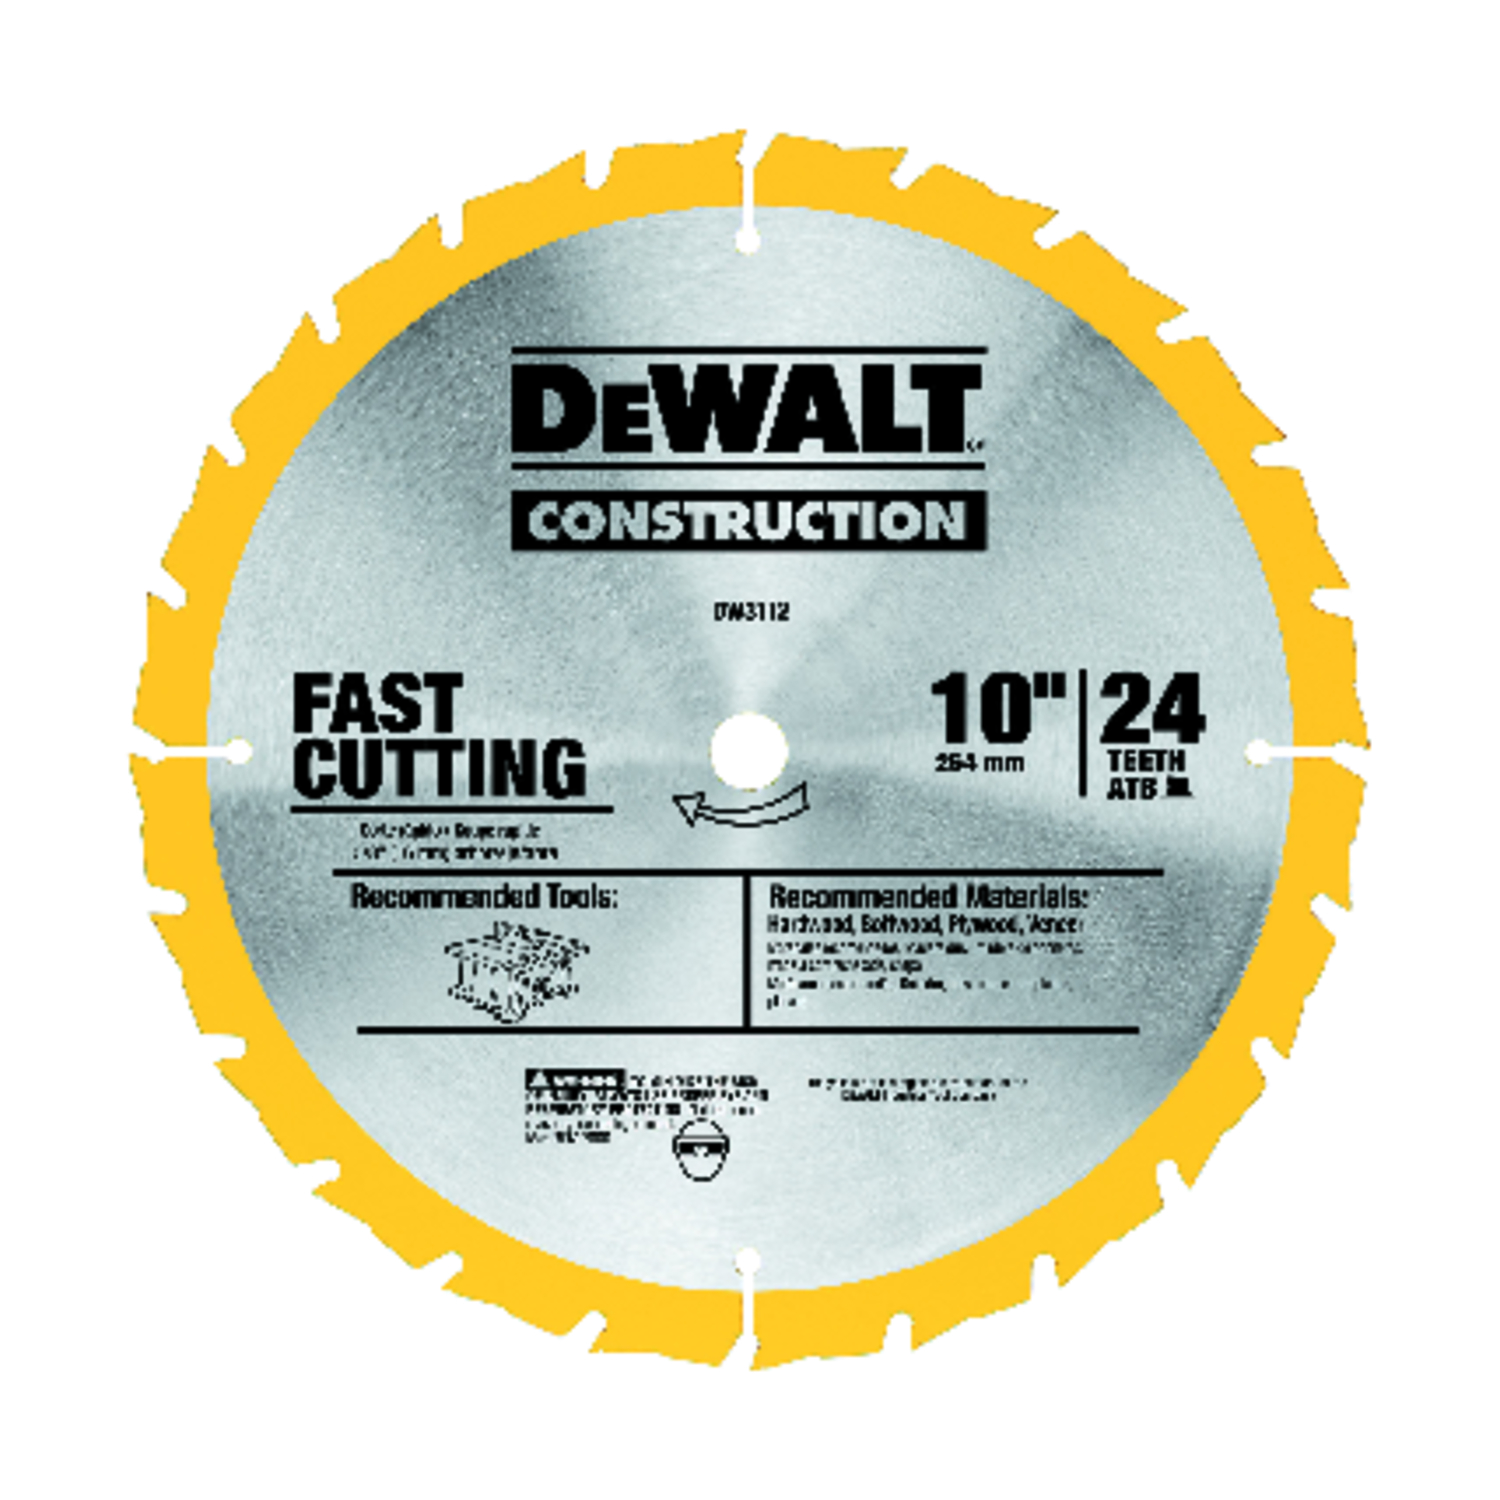 Dewalt 0069 in 10 in construction circular saw blade 58 in 1 pk construction circular saw blade 58 in greentooth Choice Image